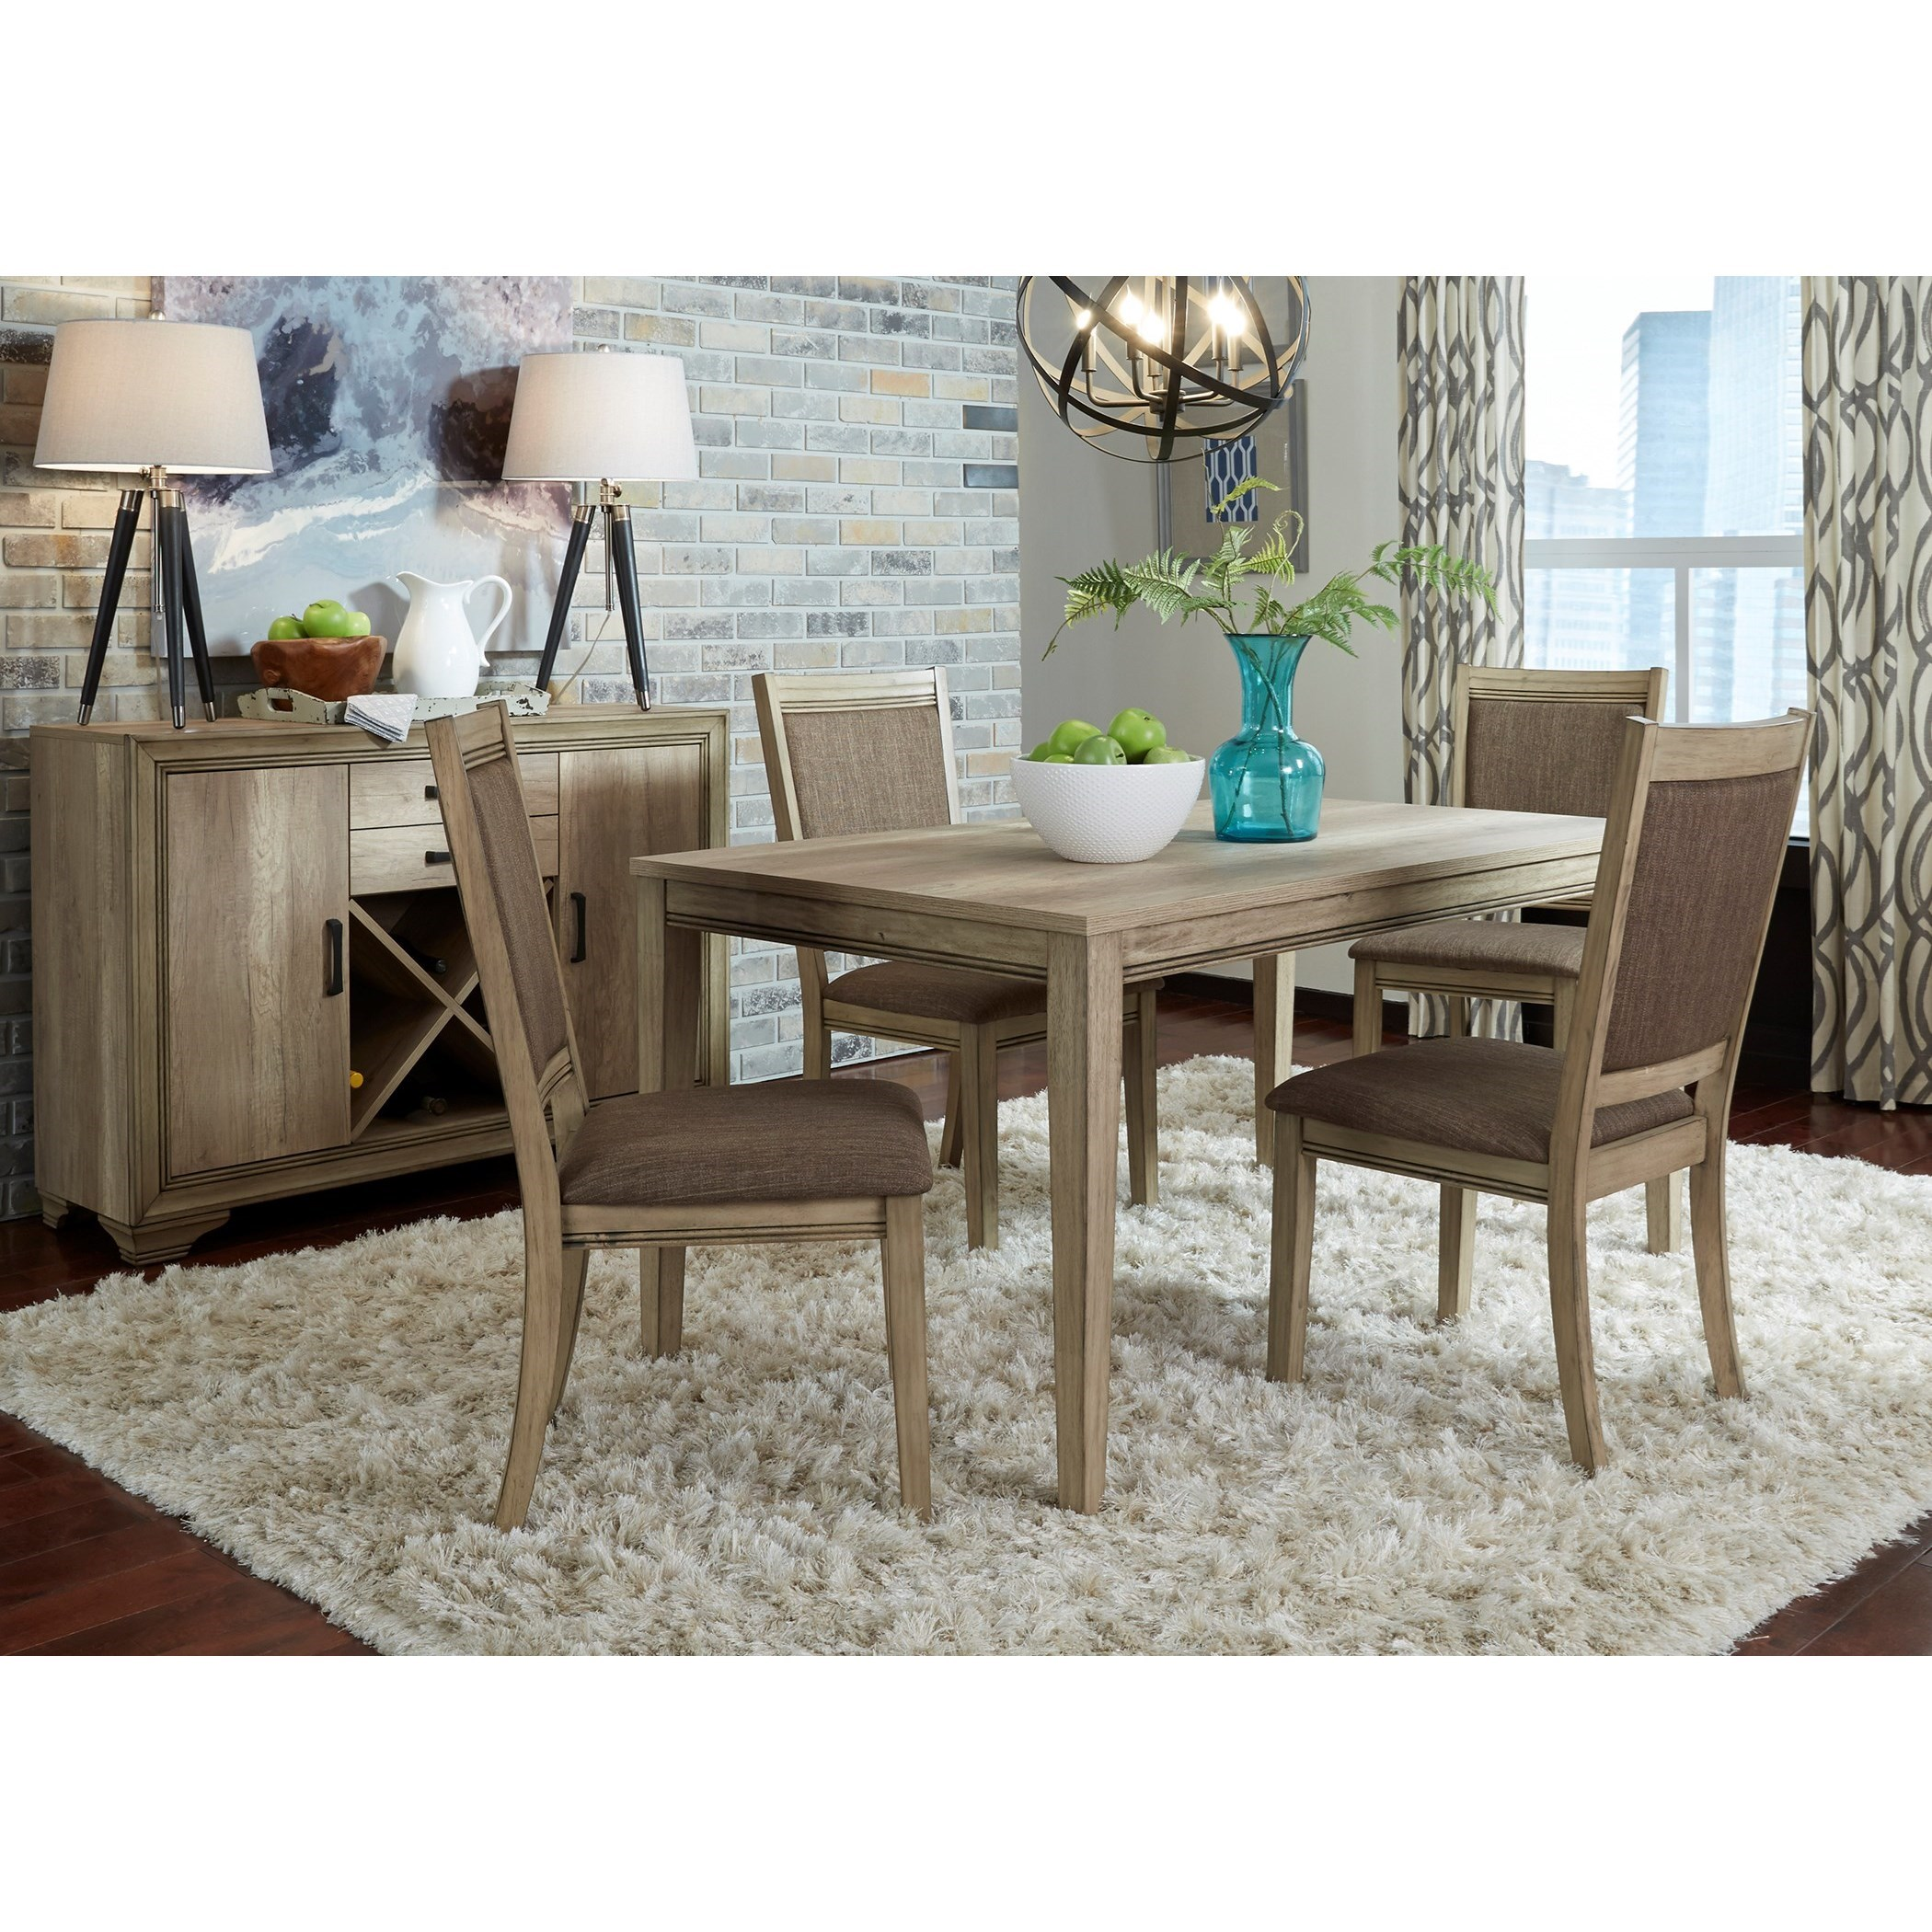 Liberty Dining Room Furniture: Liberty Furniture Sun Valley 5 Piece Leg Table Set With